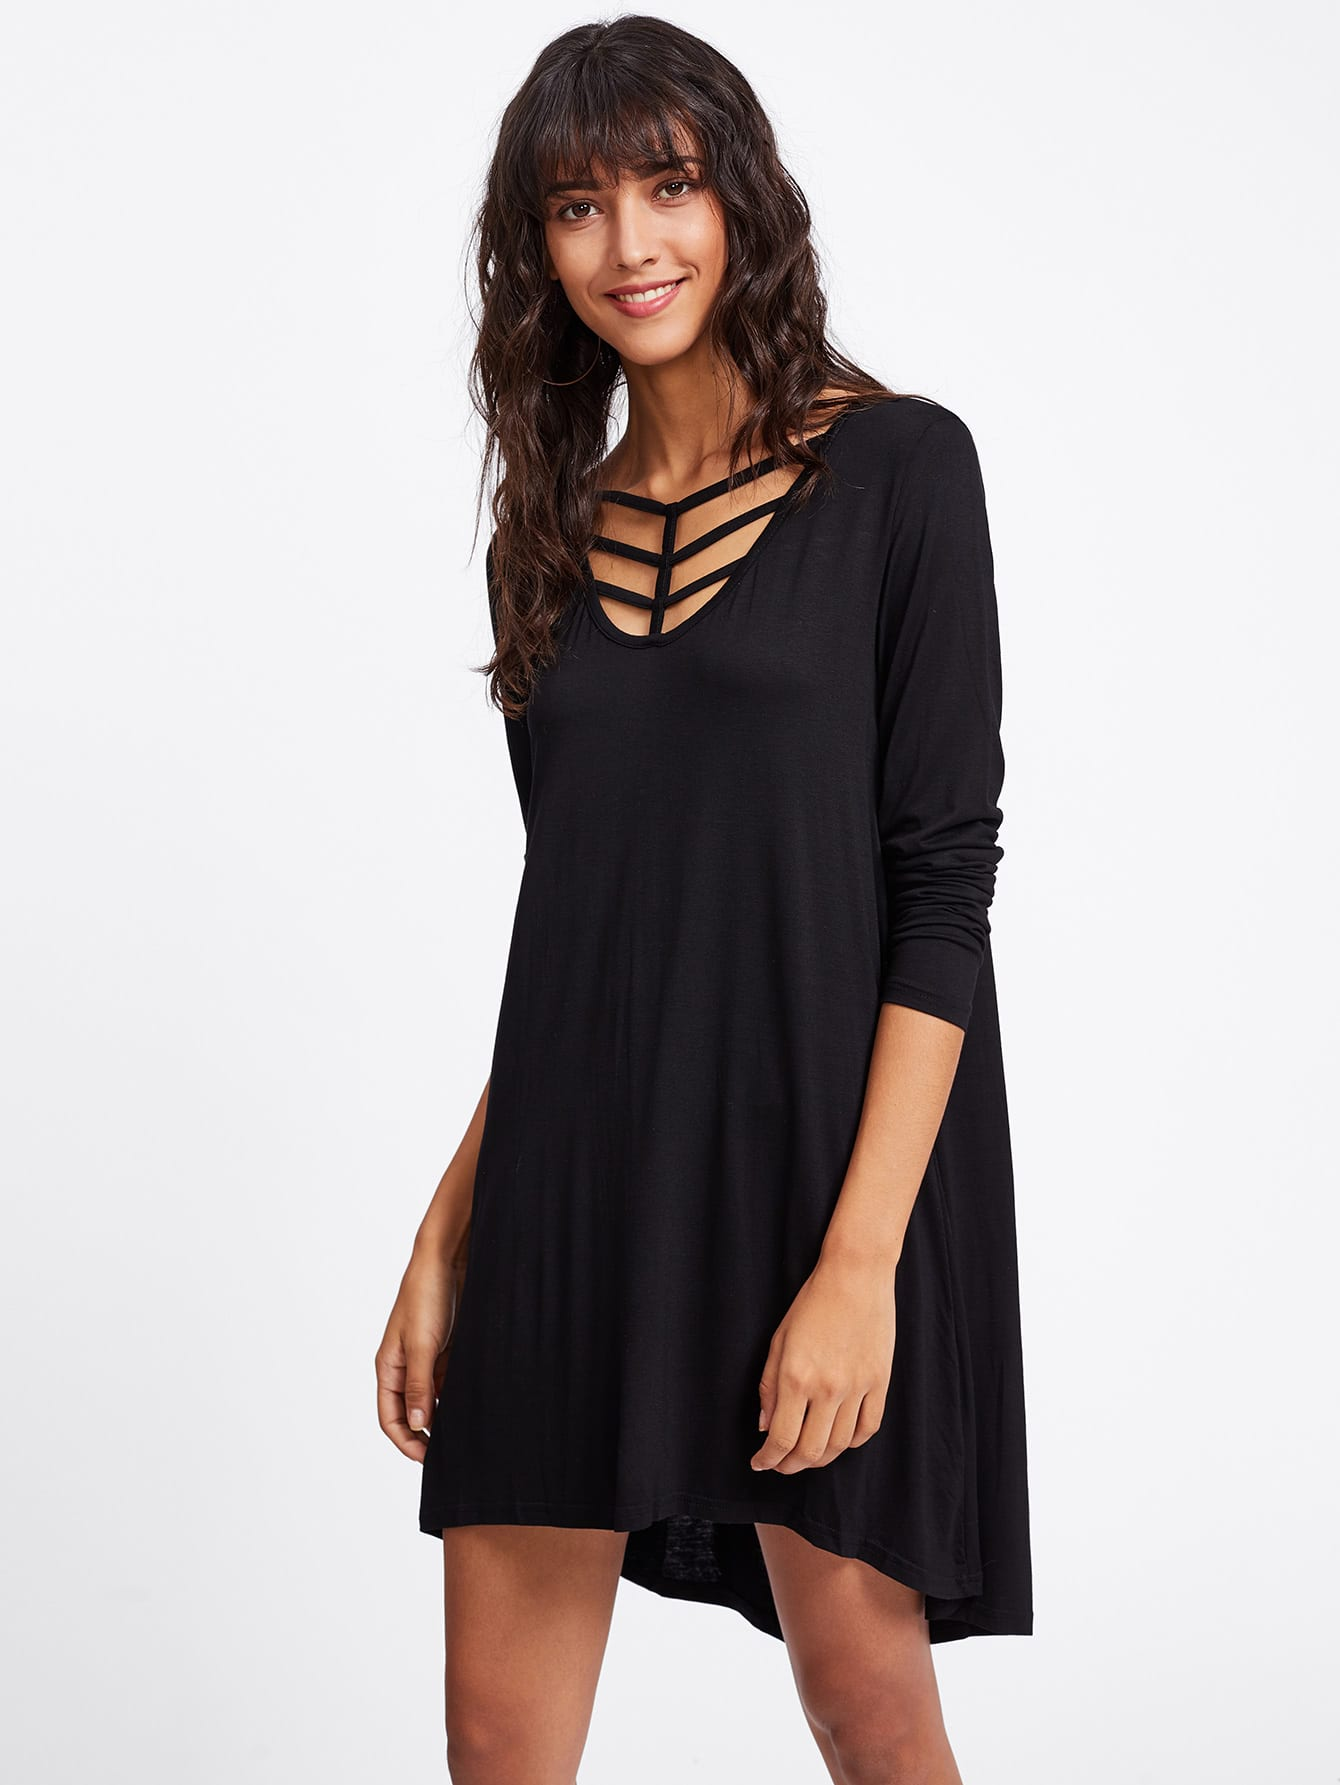 Cage Detail Dip Hem Tee Dress dip hem tee dress